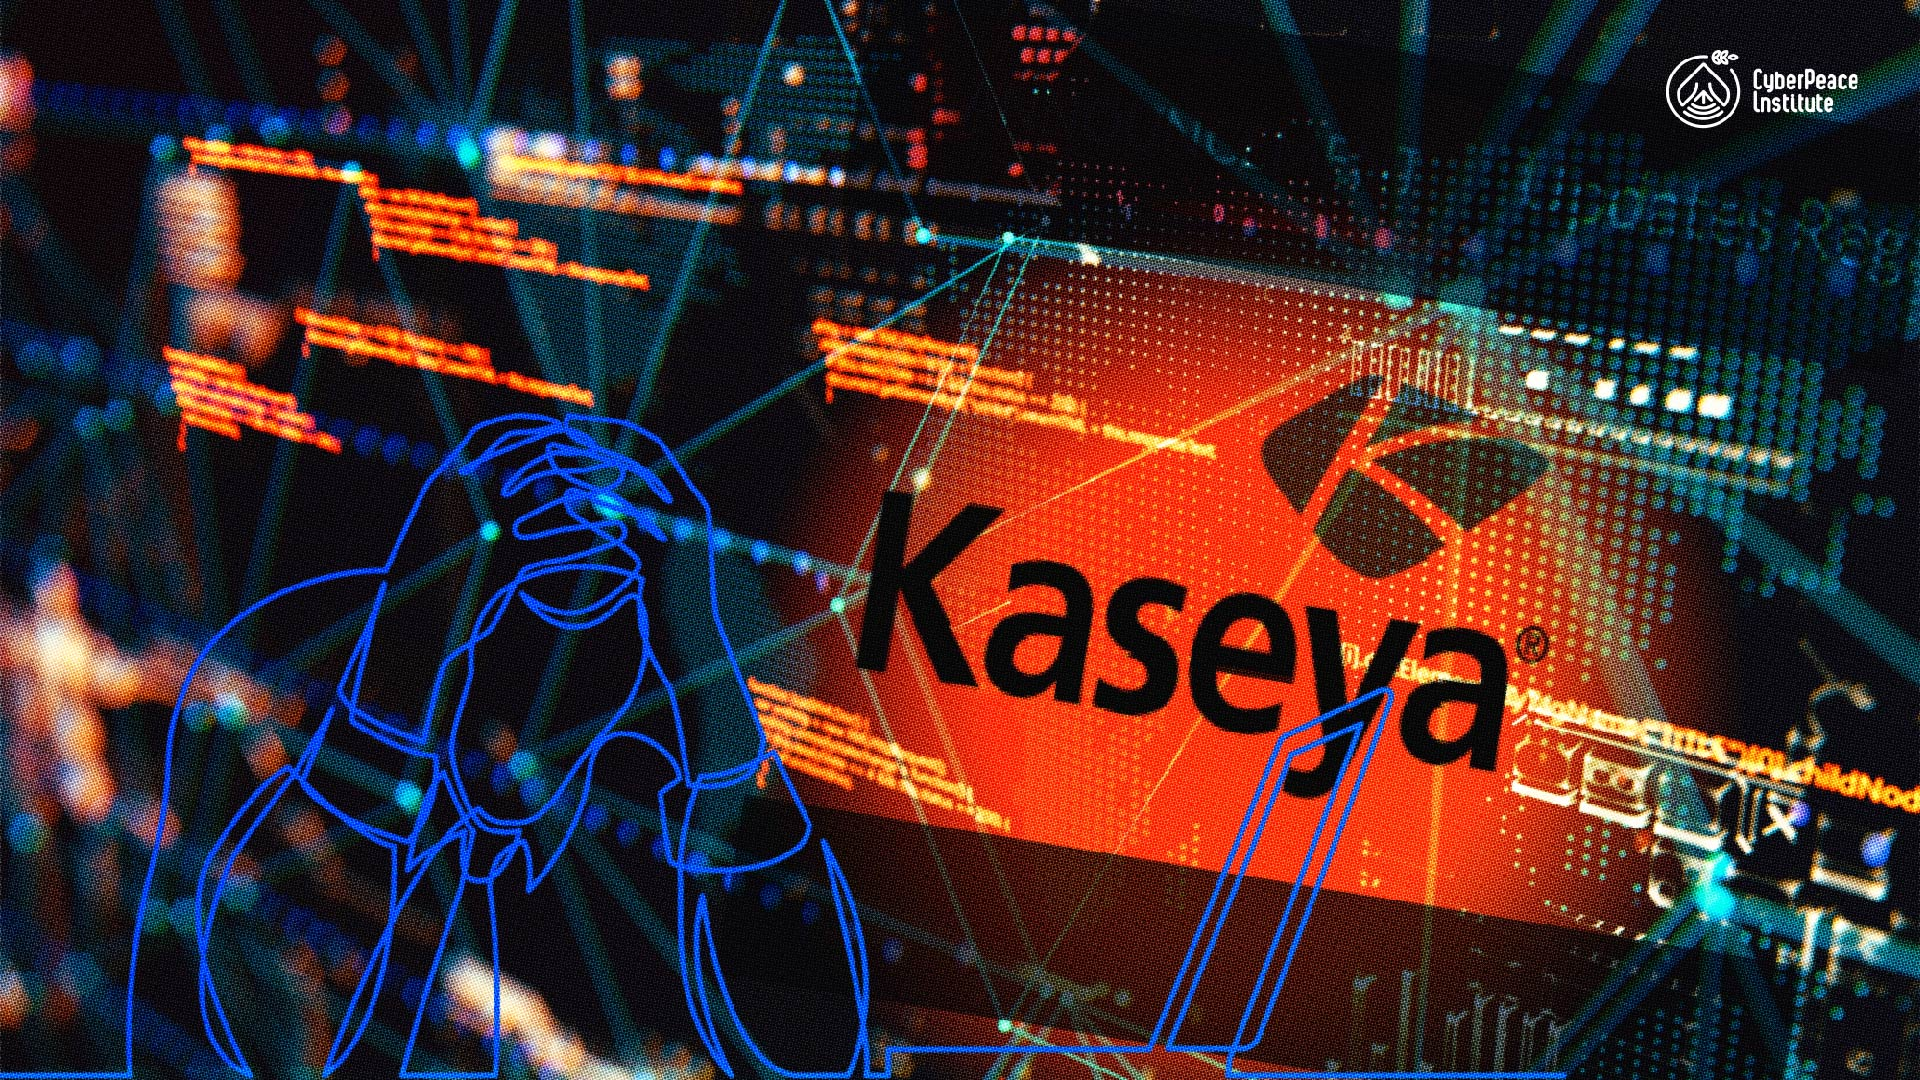 What we learned from the Kaseya attack: recommendations for a human-centric approach to curb ransomware